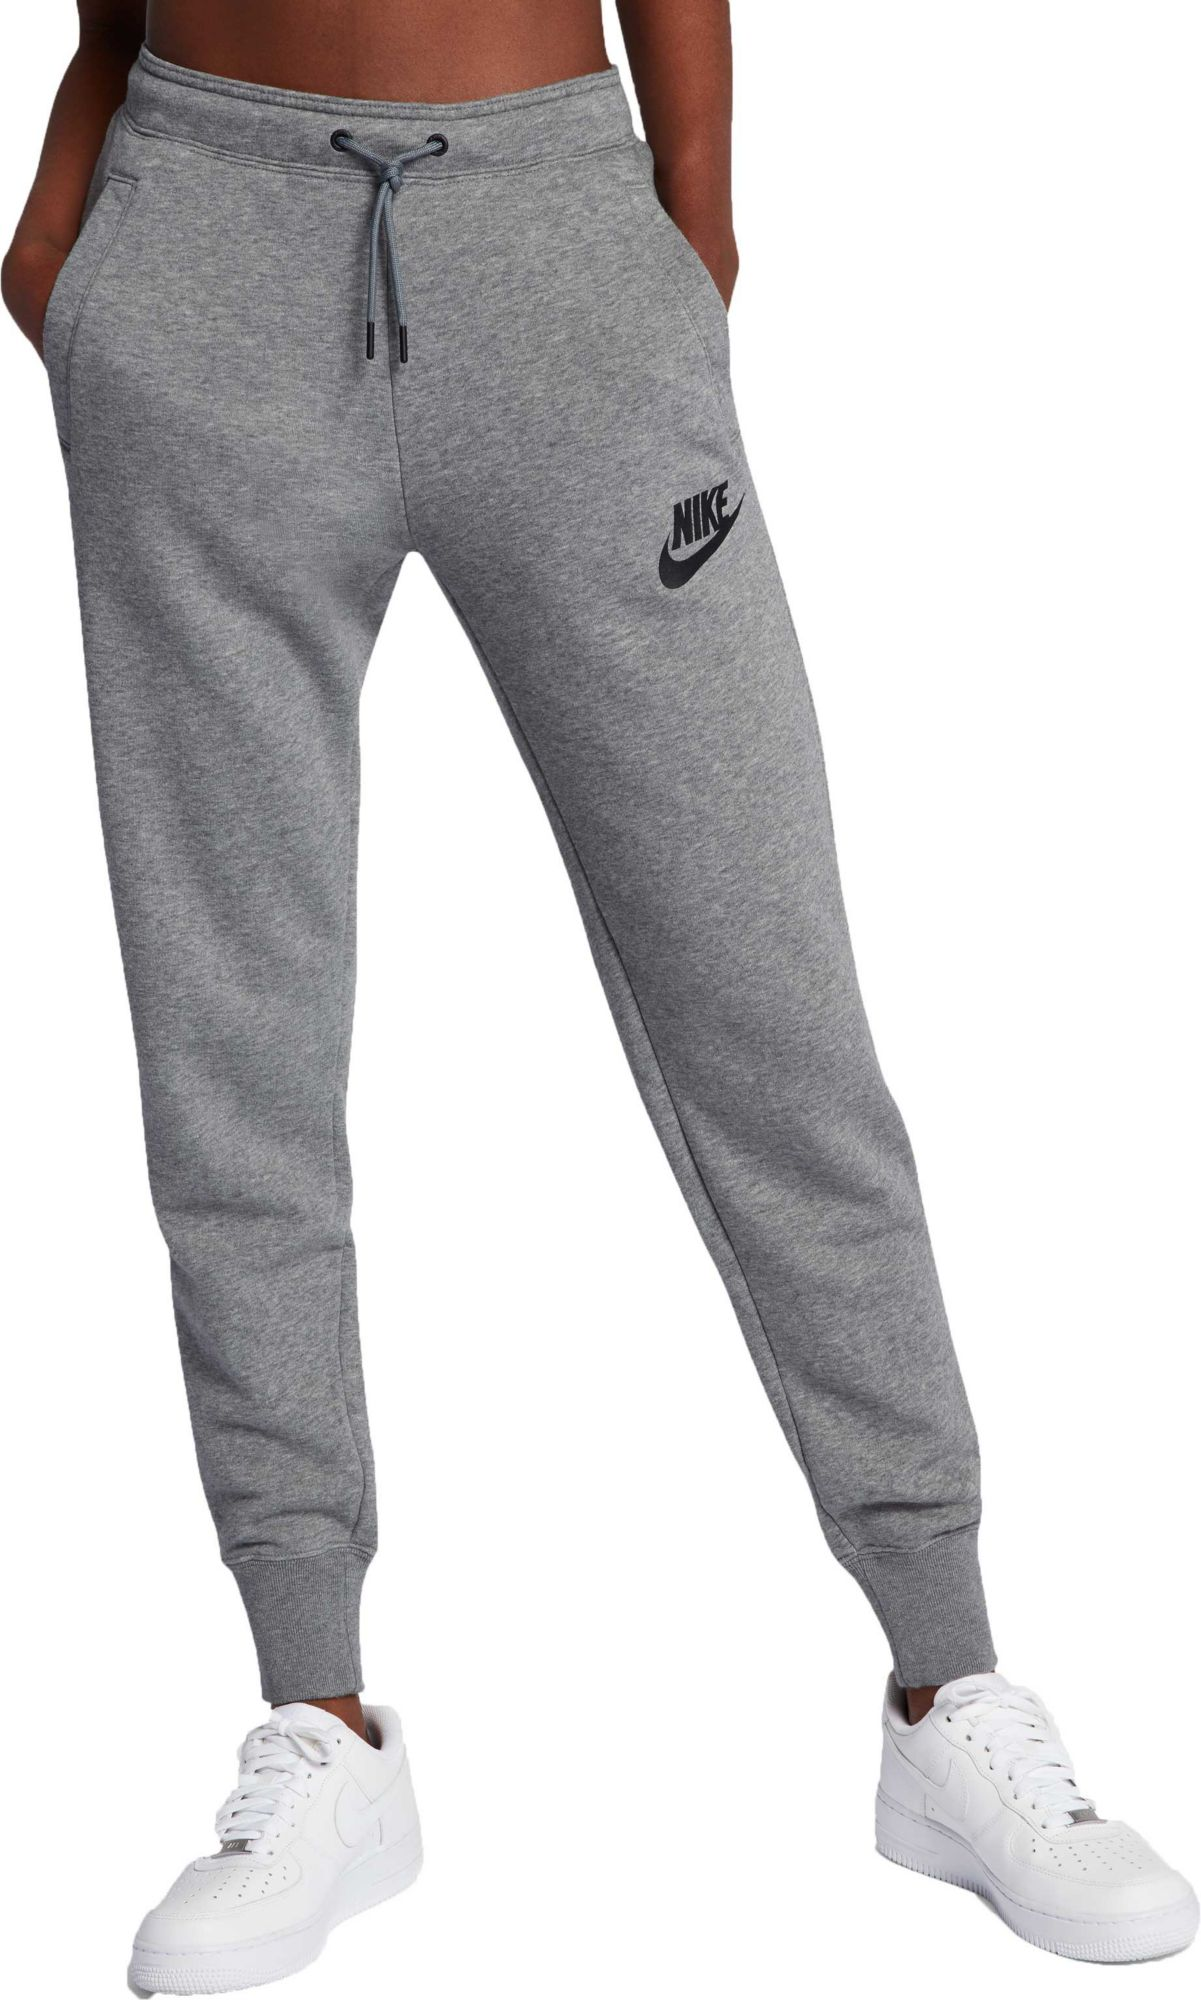 Rally In Joggers Women's Sportswear 2019Products Nike 3q4j5RAL